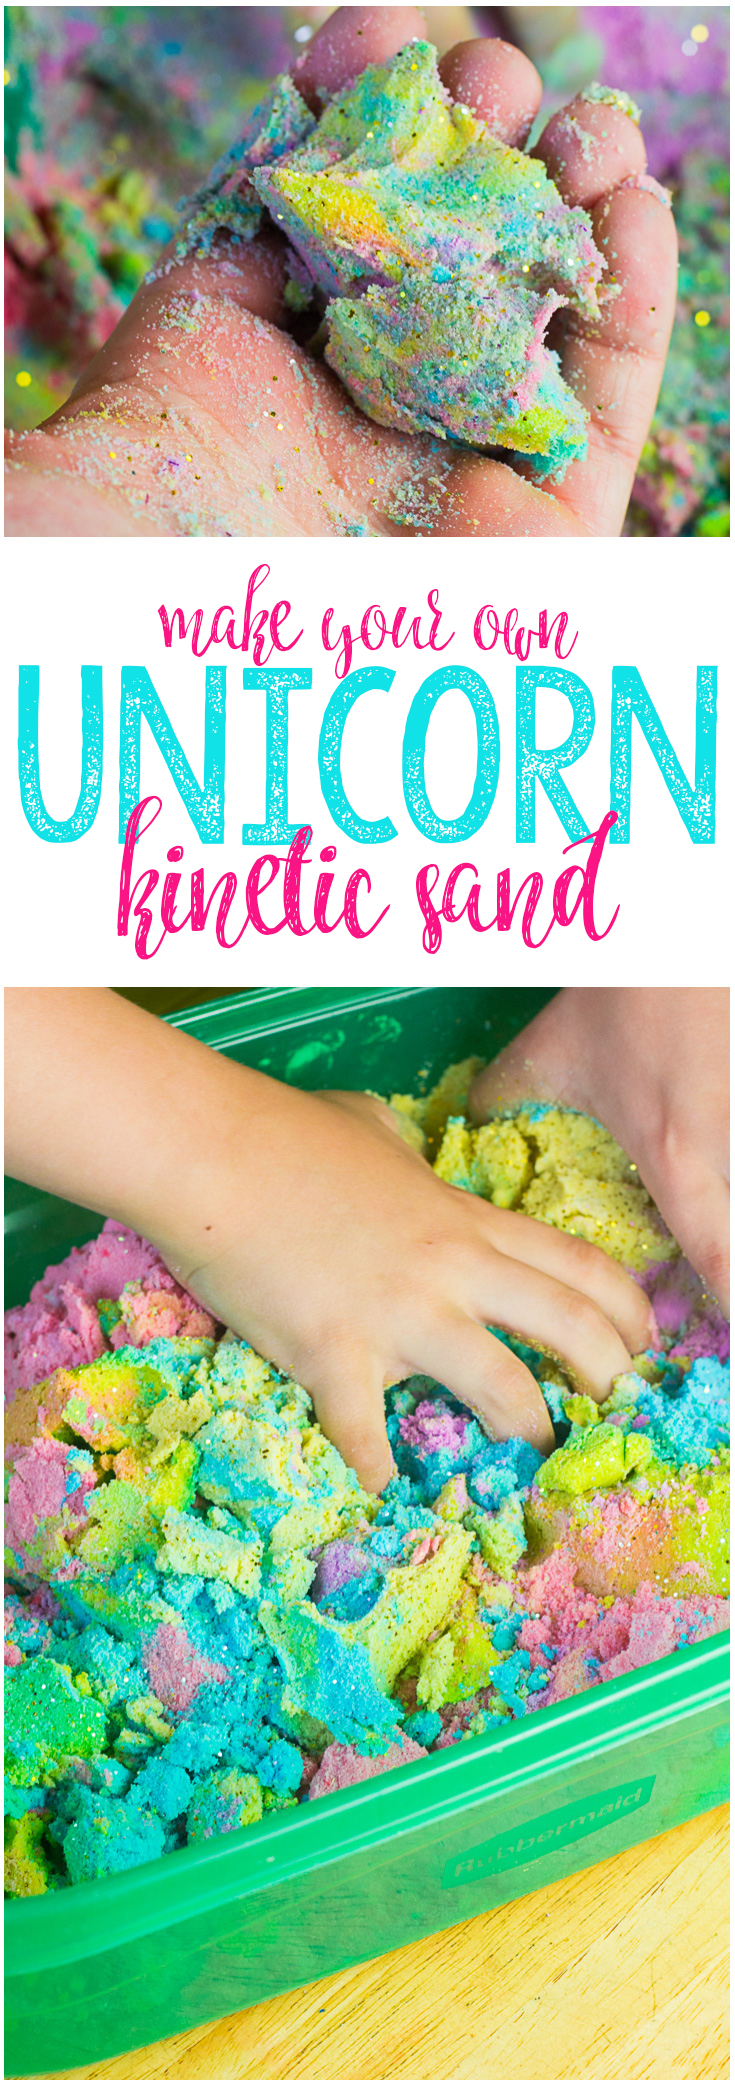 DIY Unicorn Sand! Cute and easy kids craft idea! #diy #kidscraft #unicorndiy #unicorn #unicorntheme #unicorncraft